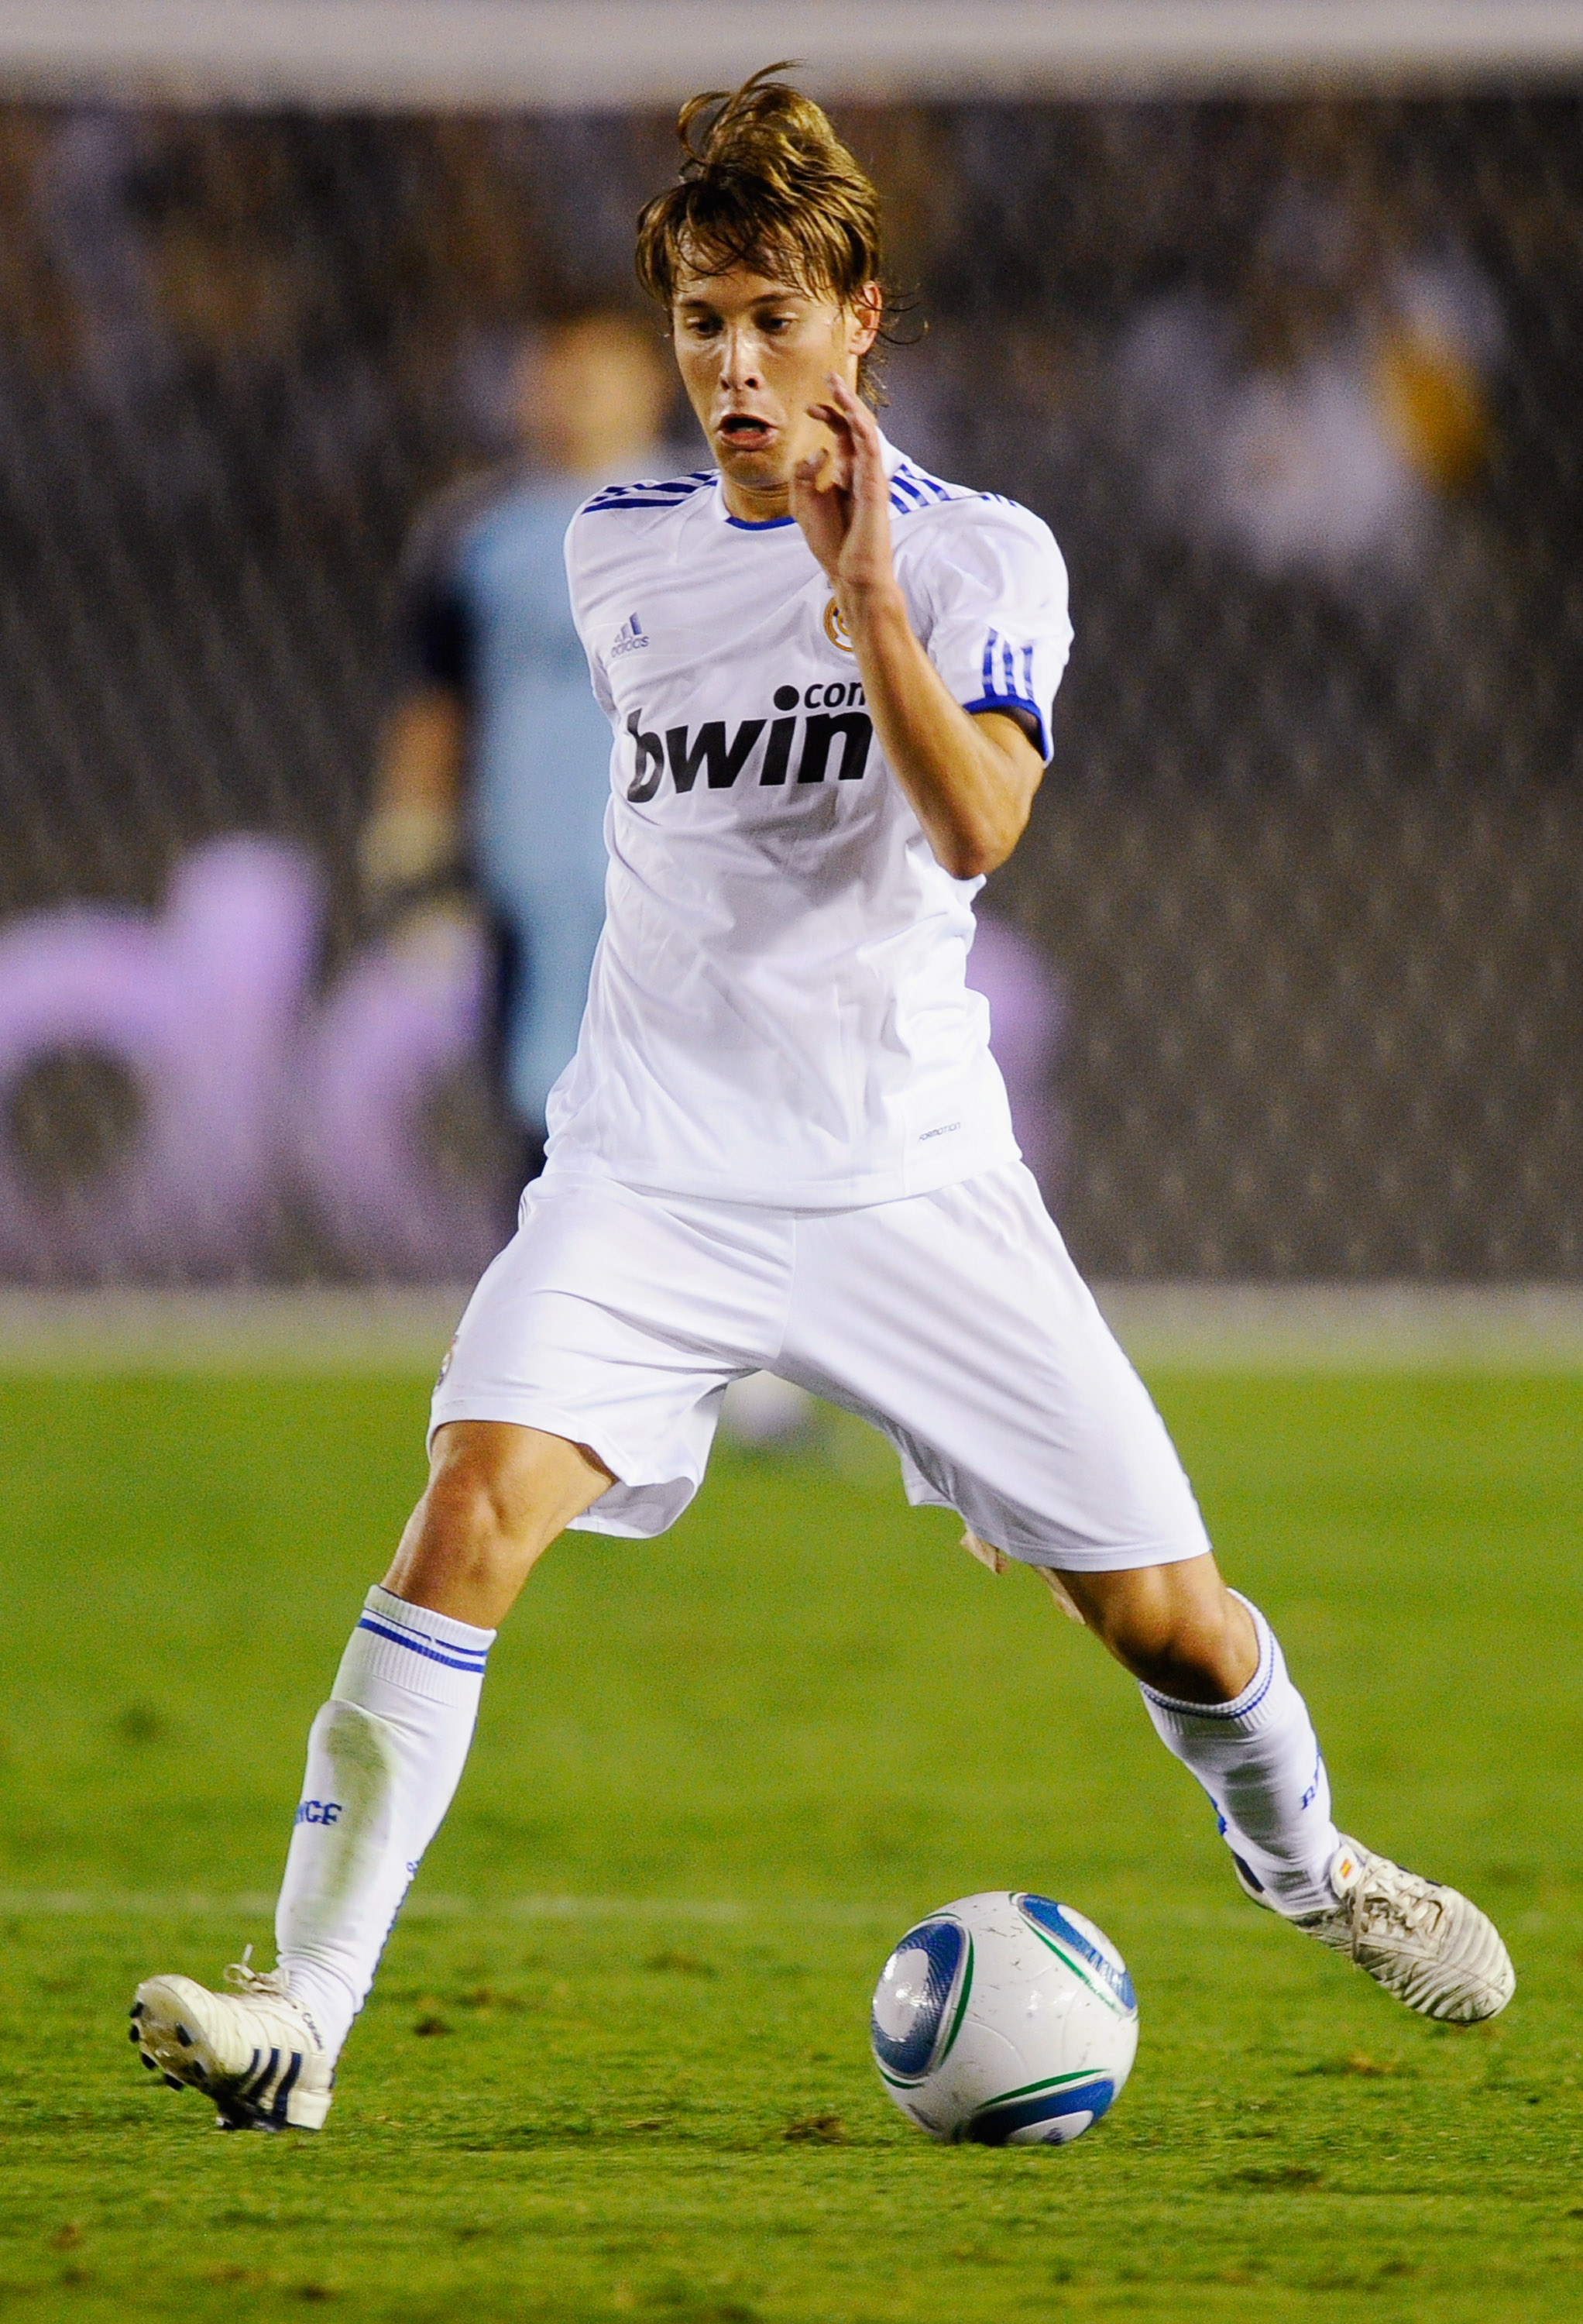 PASADENA, CA - AUGUST 07:  Sergio Canales of Real Madrid during the pre-season friendly soccer match against Los Angeles Galaxy on August 7, 2010 at the Rose Bowl in Pasadena, California. Real Madrid will travel back to Spain after the soccer match comple